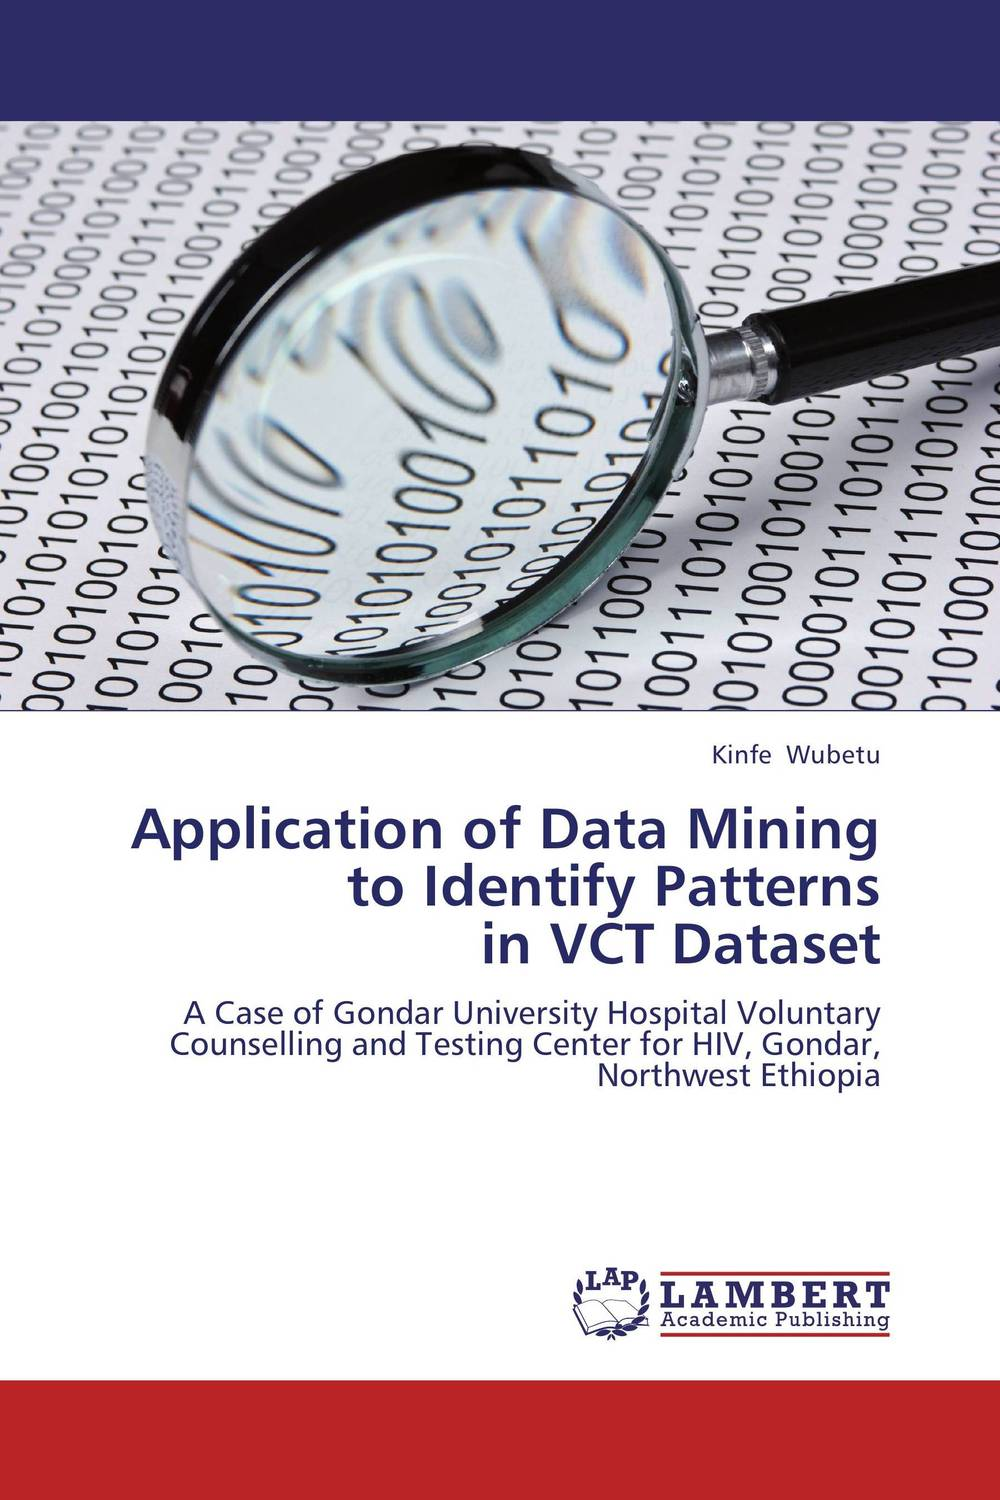 Application of Data Mining to Identify Patterns in VCT Dataset assessment of anc clients willingness for hiv counseling and testing